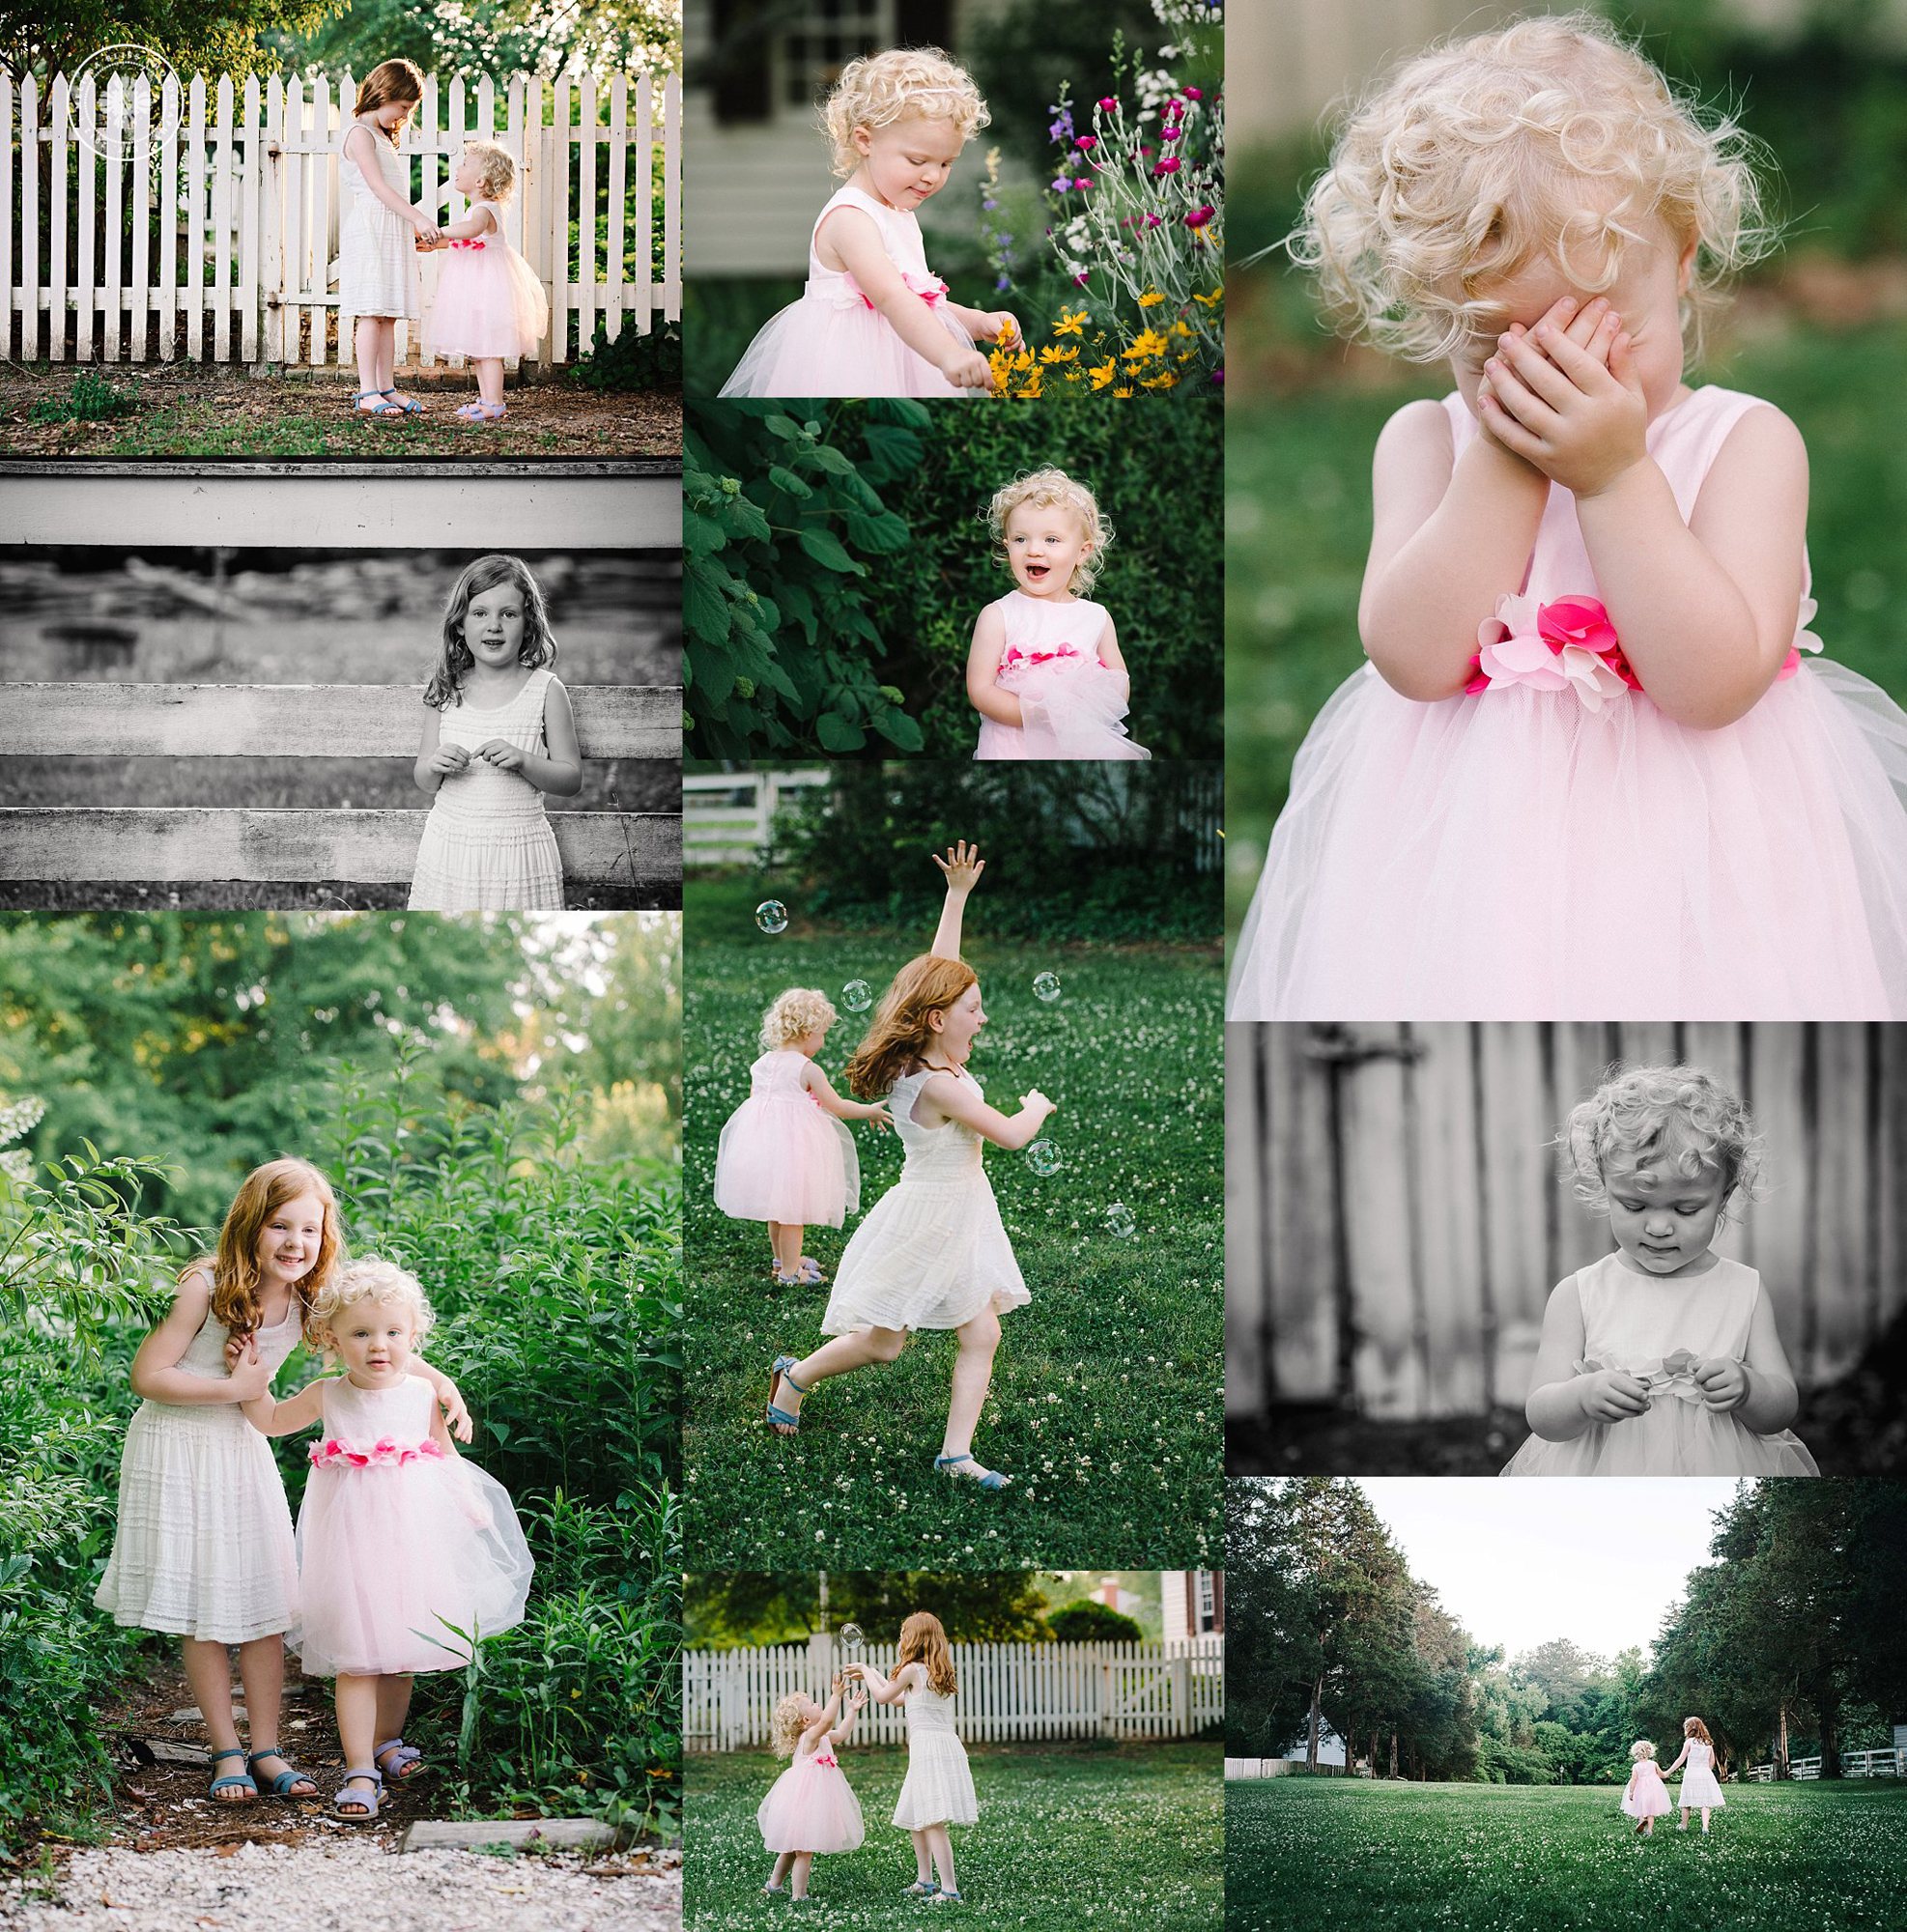 girls-play-in-spring-garden-colonial-williamsburg-va-photographer-melissa-bliss-photography